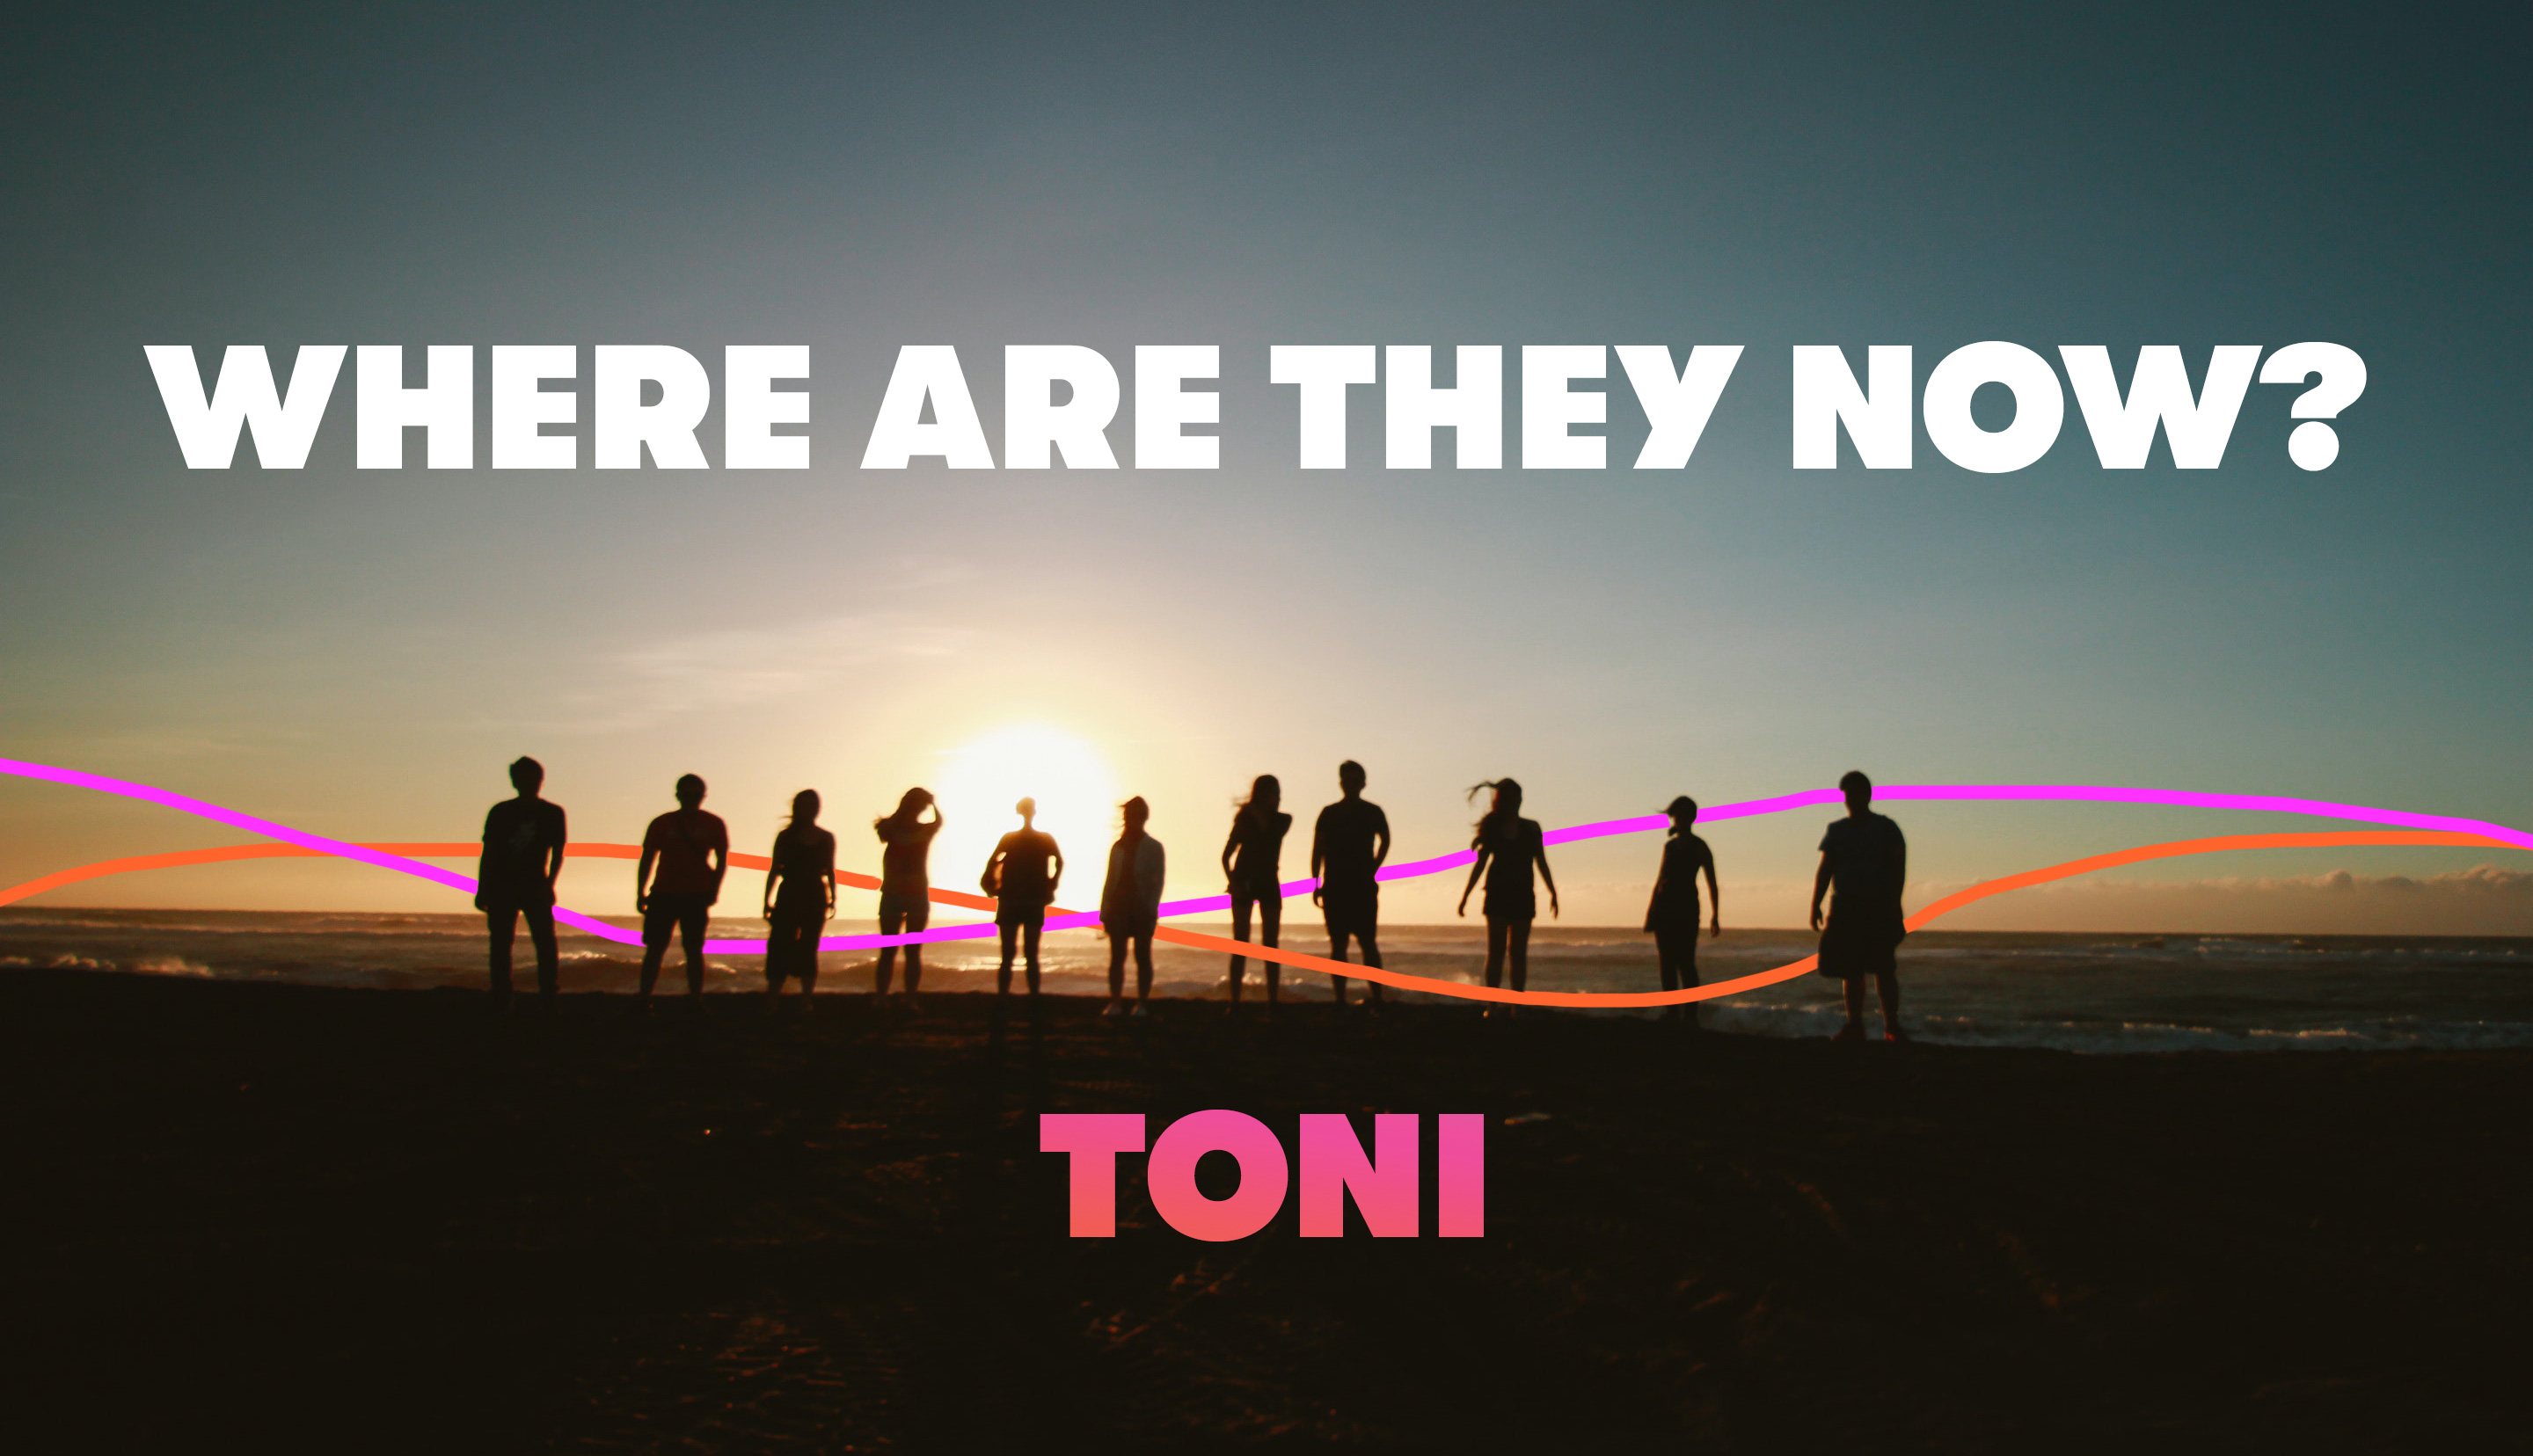 Where are they now header (Toni)